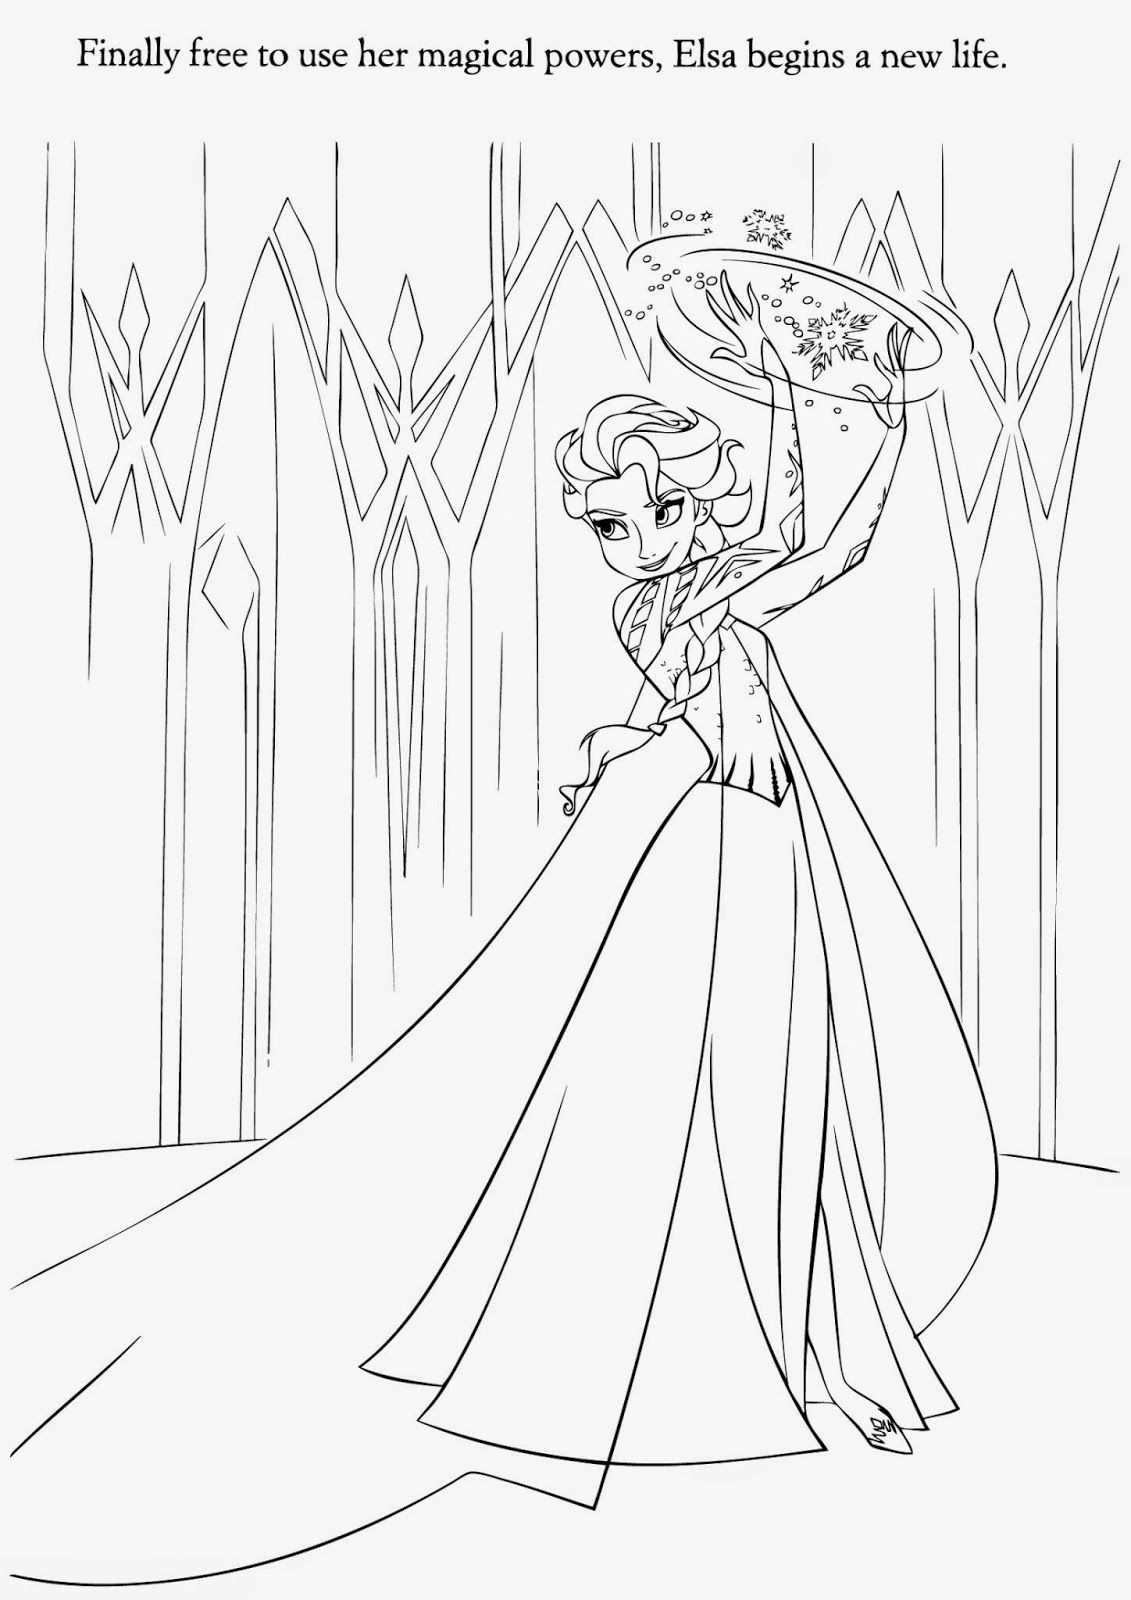 Elsa Frozen Coloring Pages Only Coloring Pages Frozen Coloring Pages Frozen Coloring Disney Coloring Pages